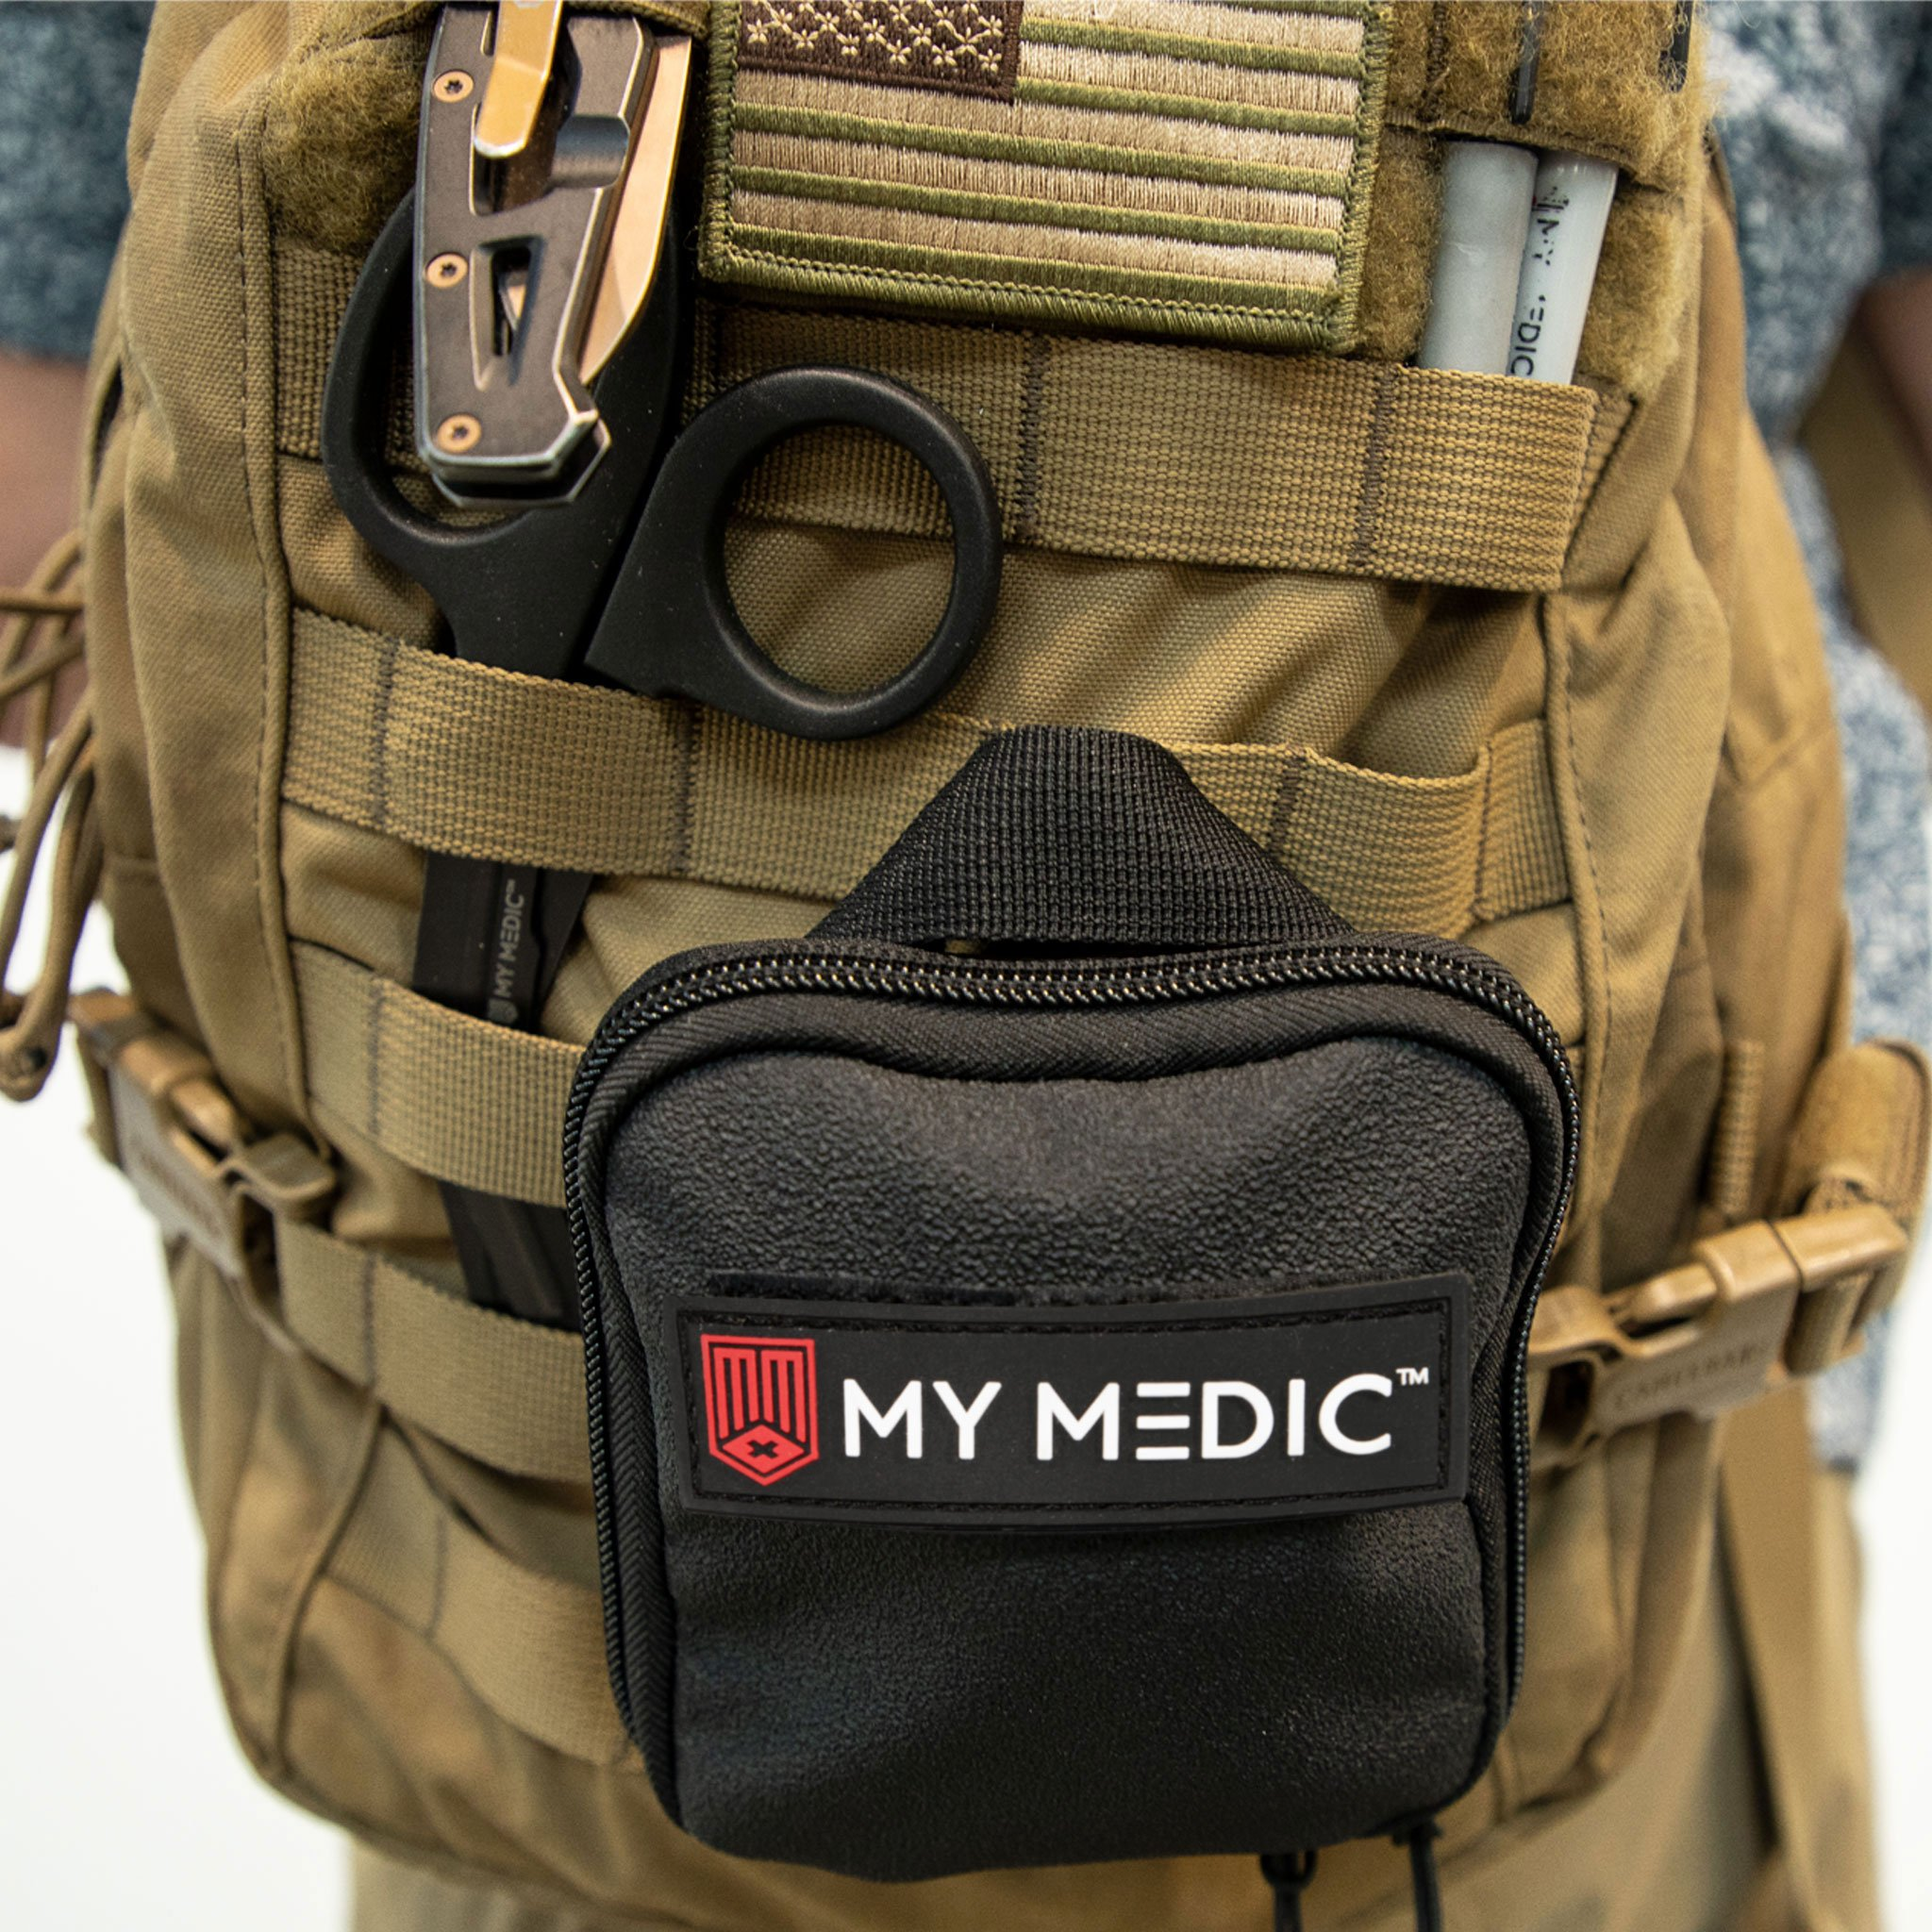 Every Day Carry First Aid Kit